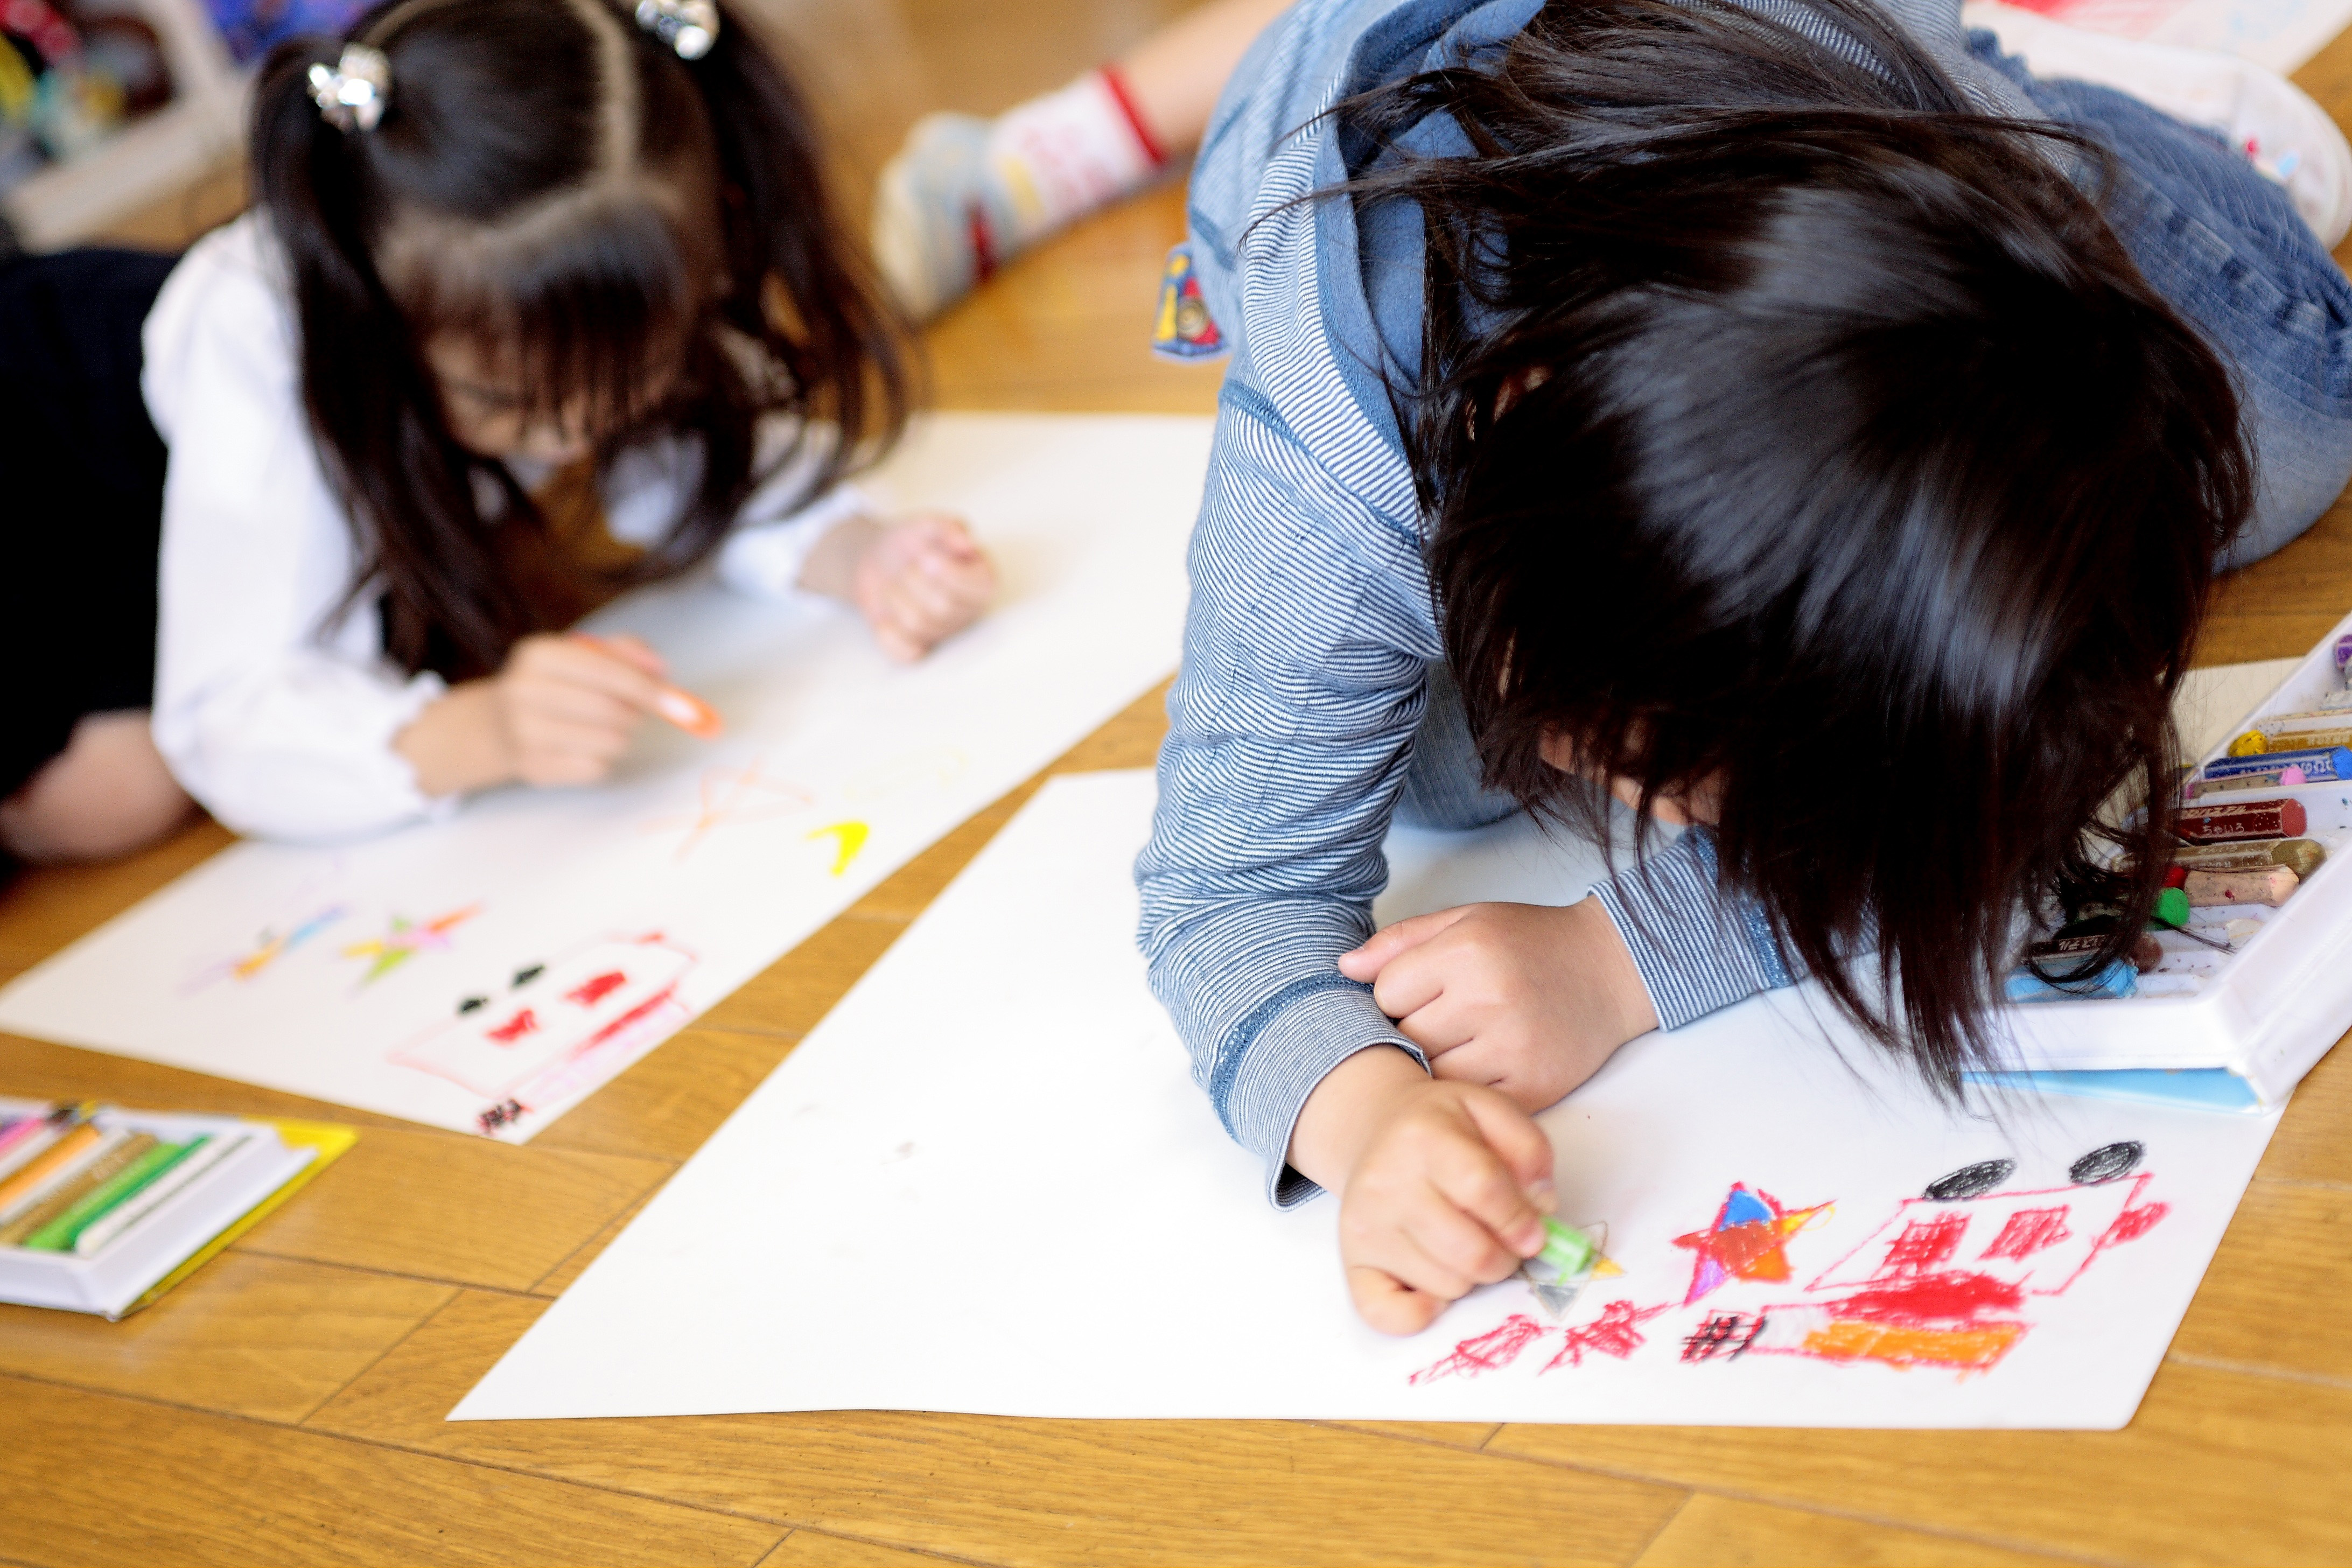 Makeing drawing, picture, children